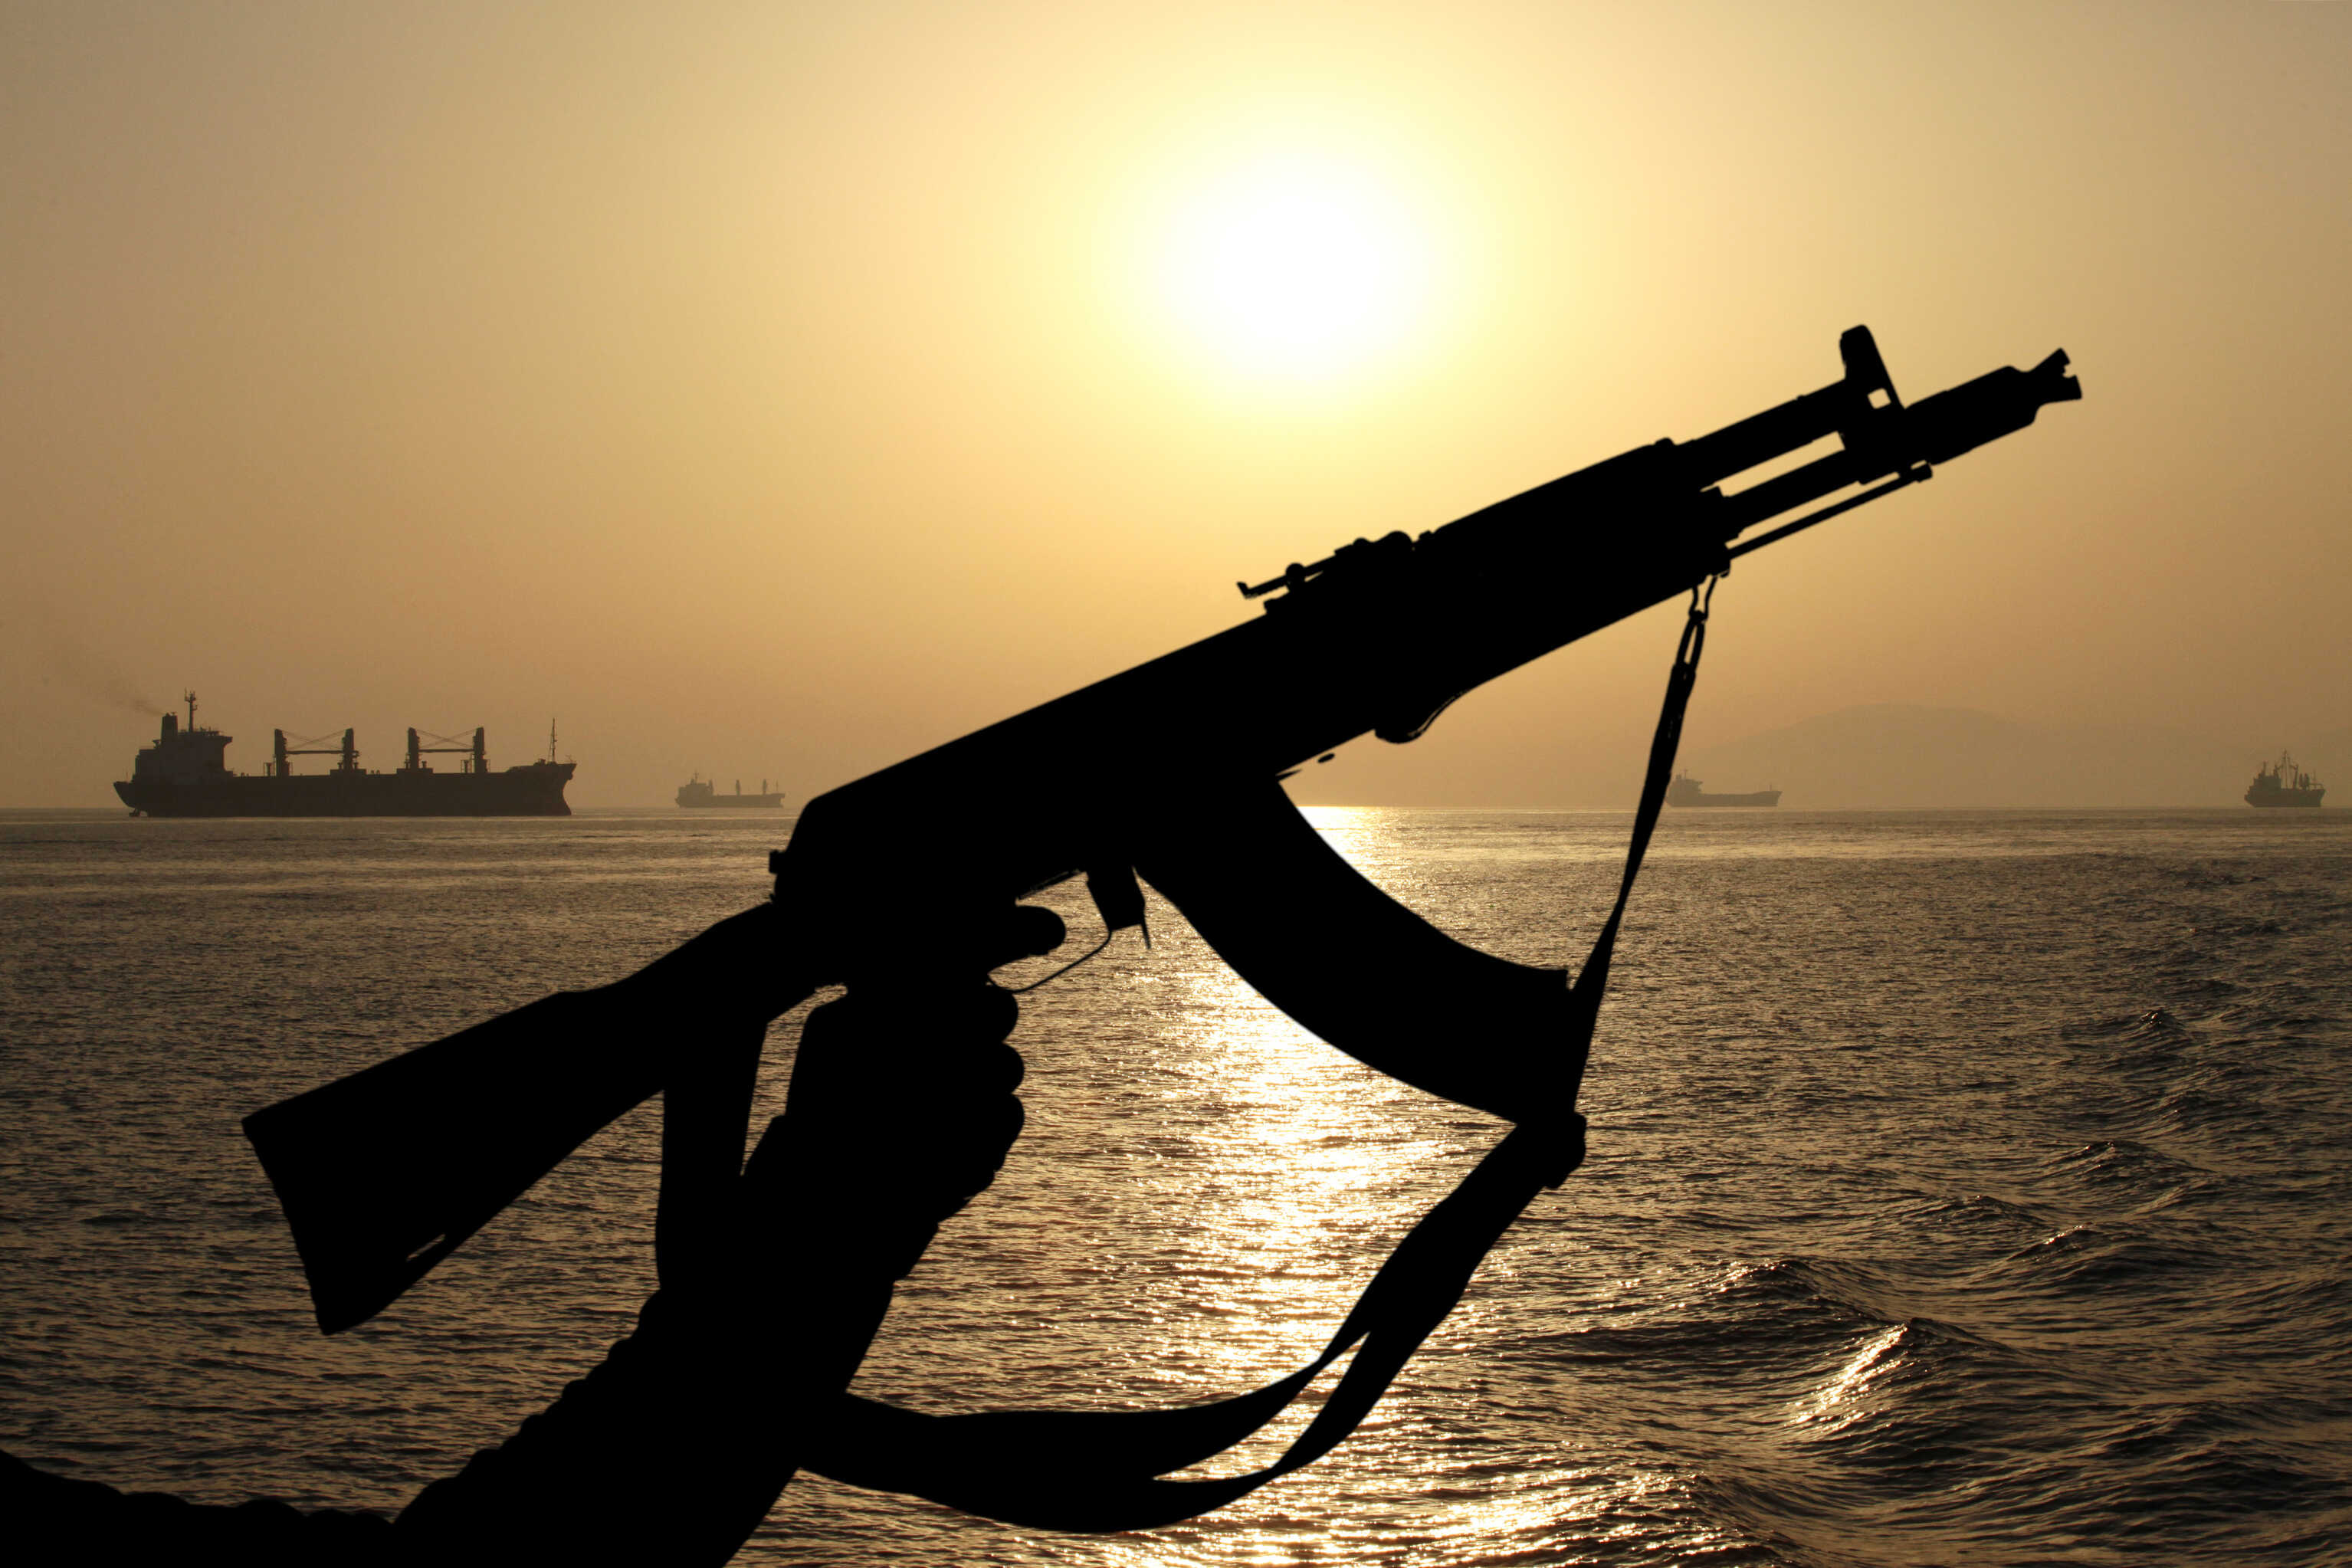 Pirate AK47 with ship in background